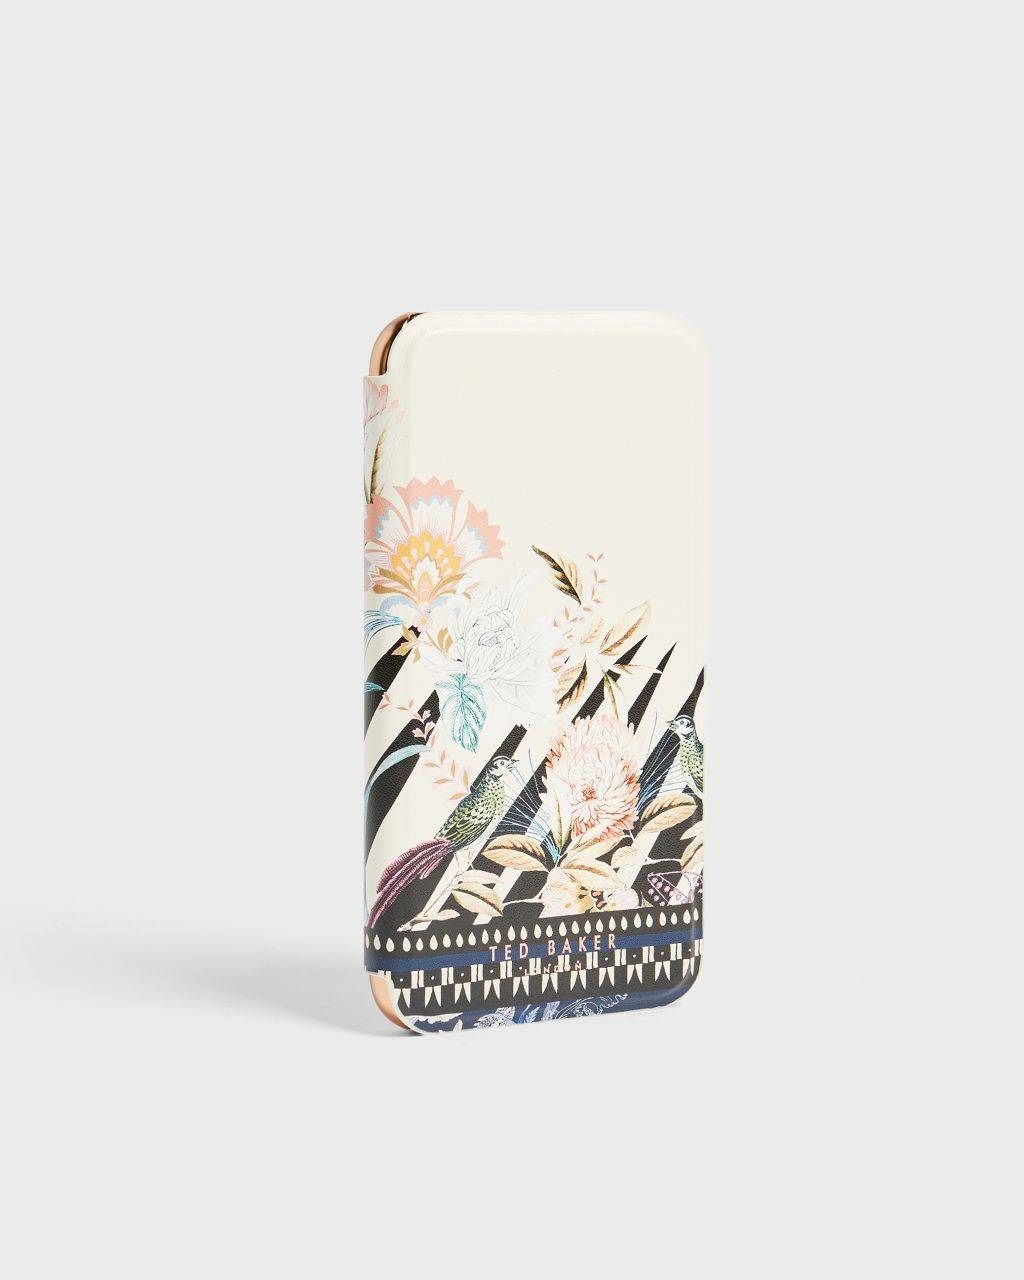 Ted Baker Decadence Mirror Iphone 11 Case  - Natural - Size: One Size